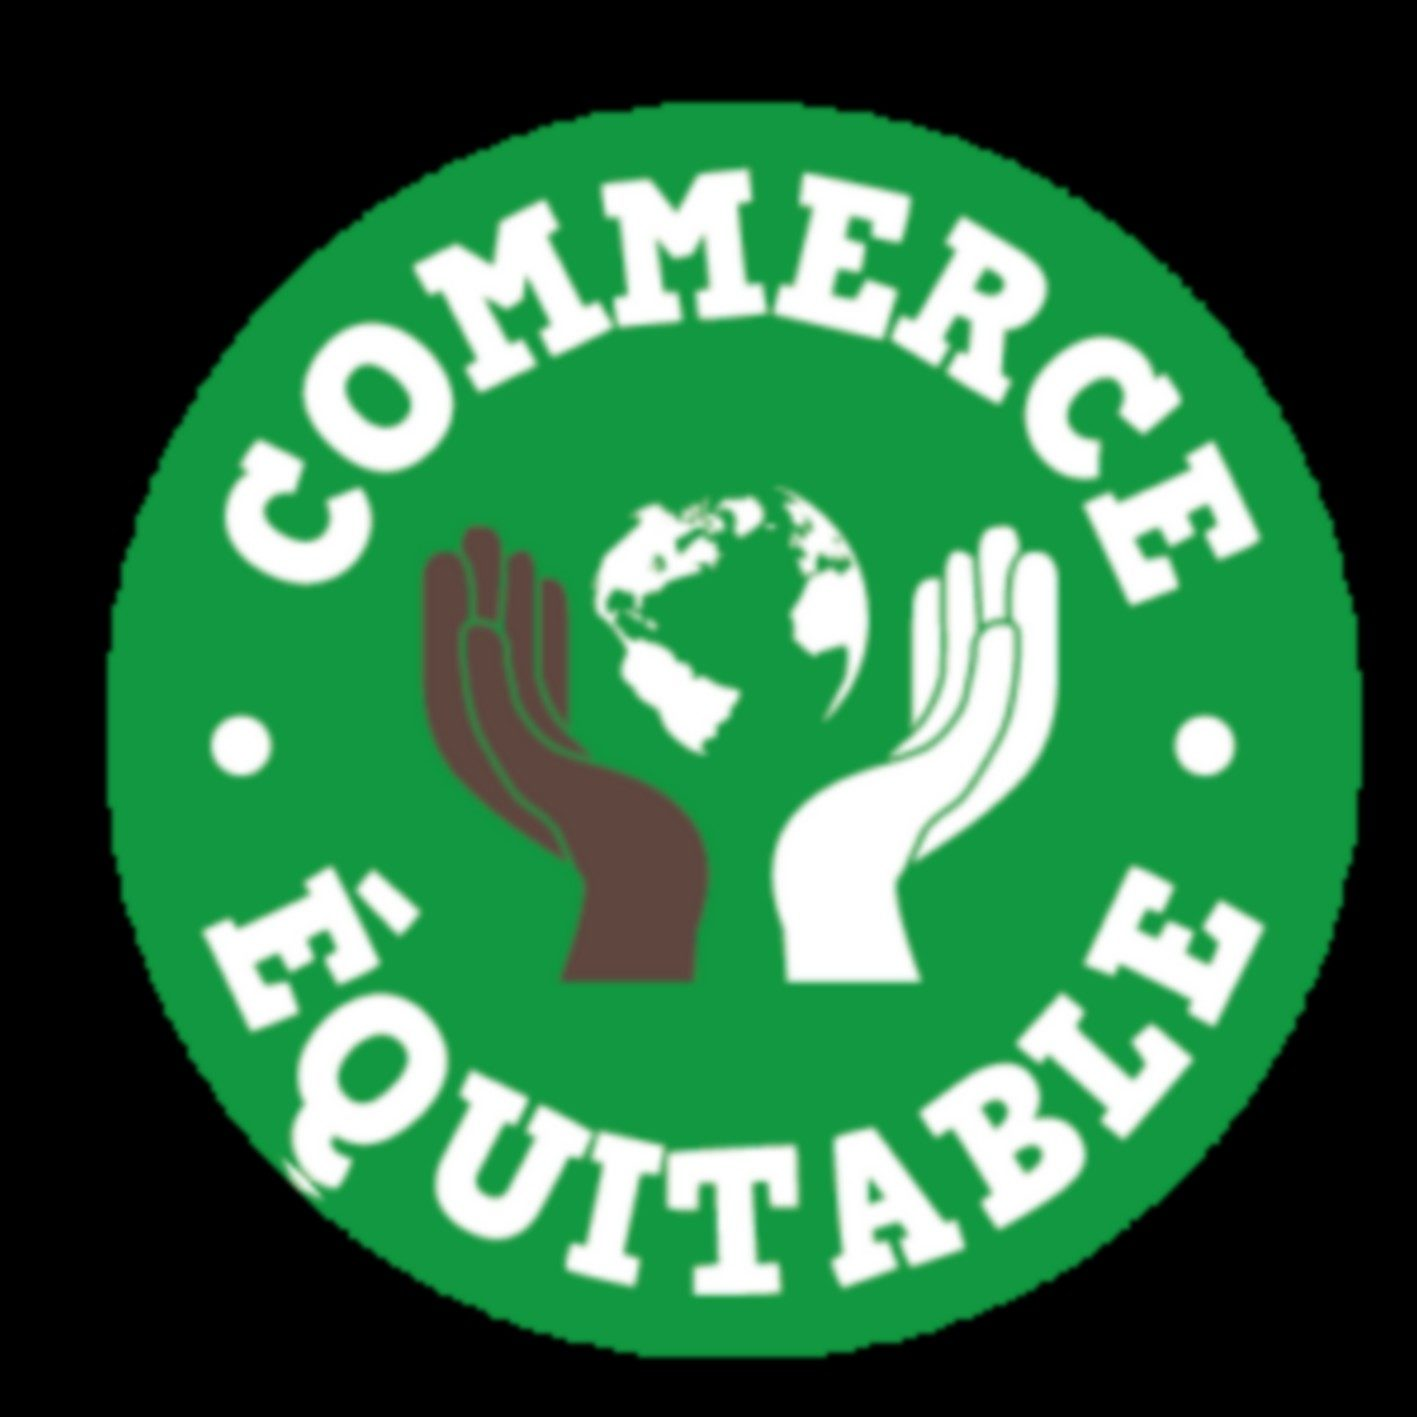 commerce-equitable-01.jpg